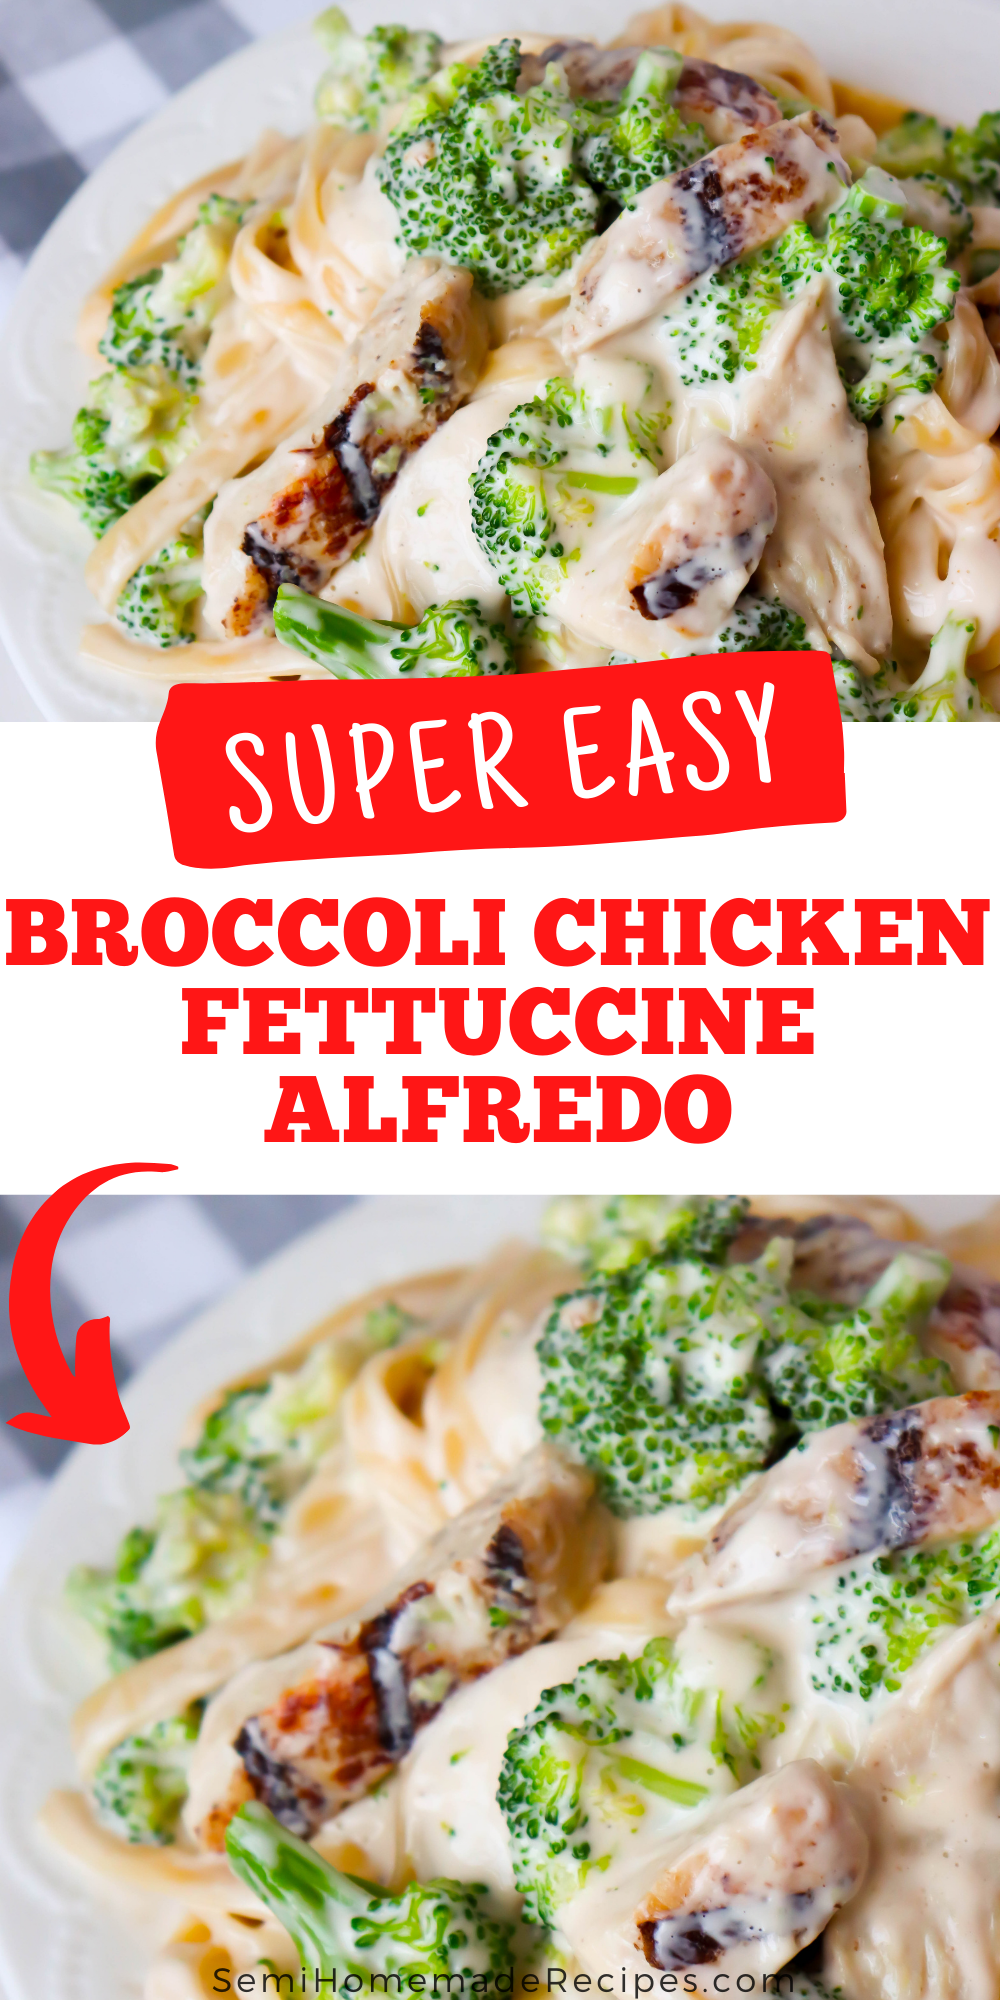 Ready for a great semi homemade dinner idea? This super easy Broccoli Chicken Fettuccine Alfredo recipe uses your favorite jarred alfredo sauce, frozen broccoli florets, chicken and fettuccini pasta to create a super tasty and fast meal!